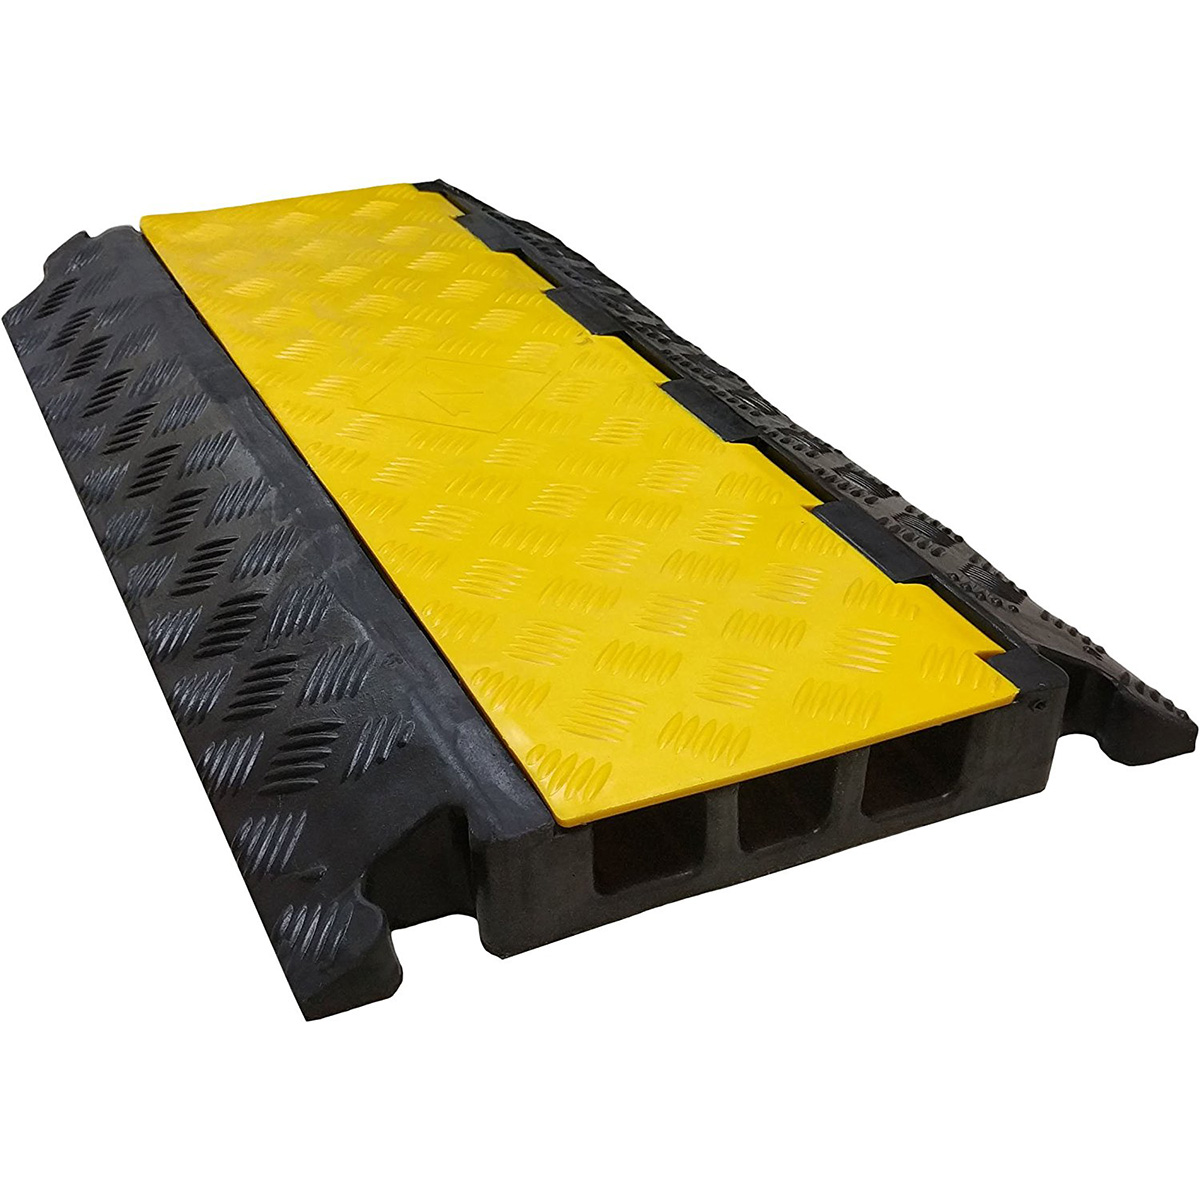 EZ Rubber Cable Protection Ramps | 2, 3 , 5 Channel Options